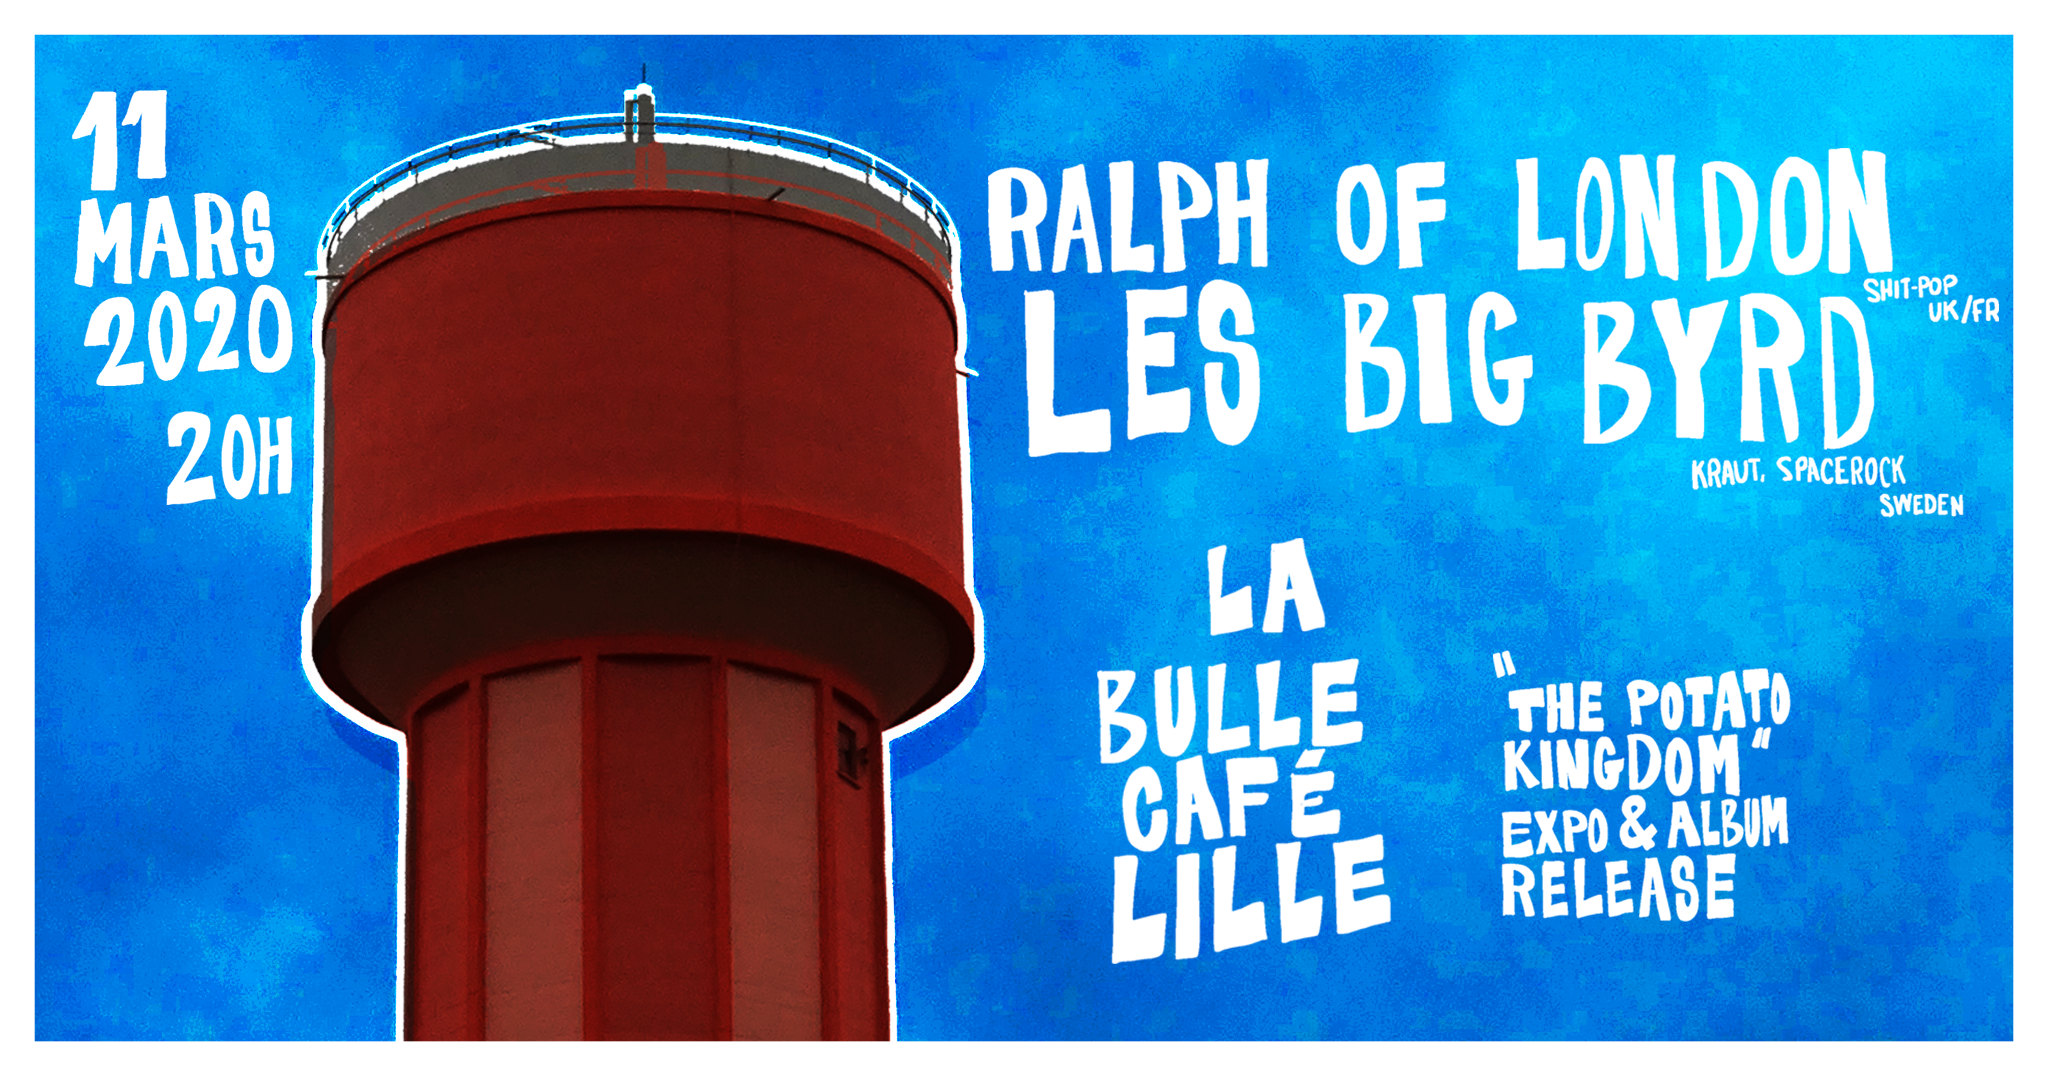 Les Big Byrd + Ralph of London